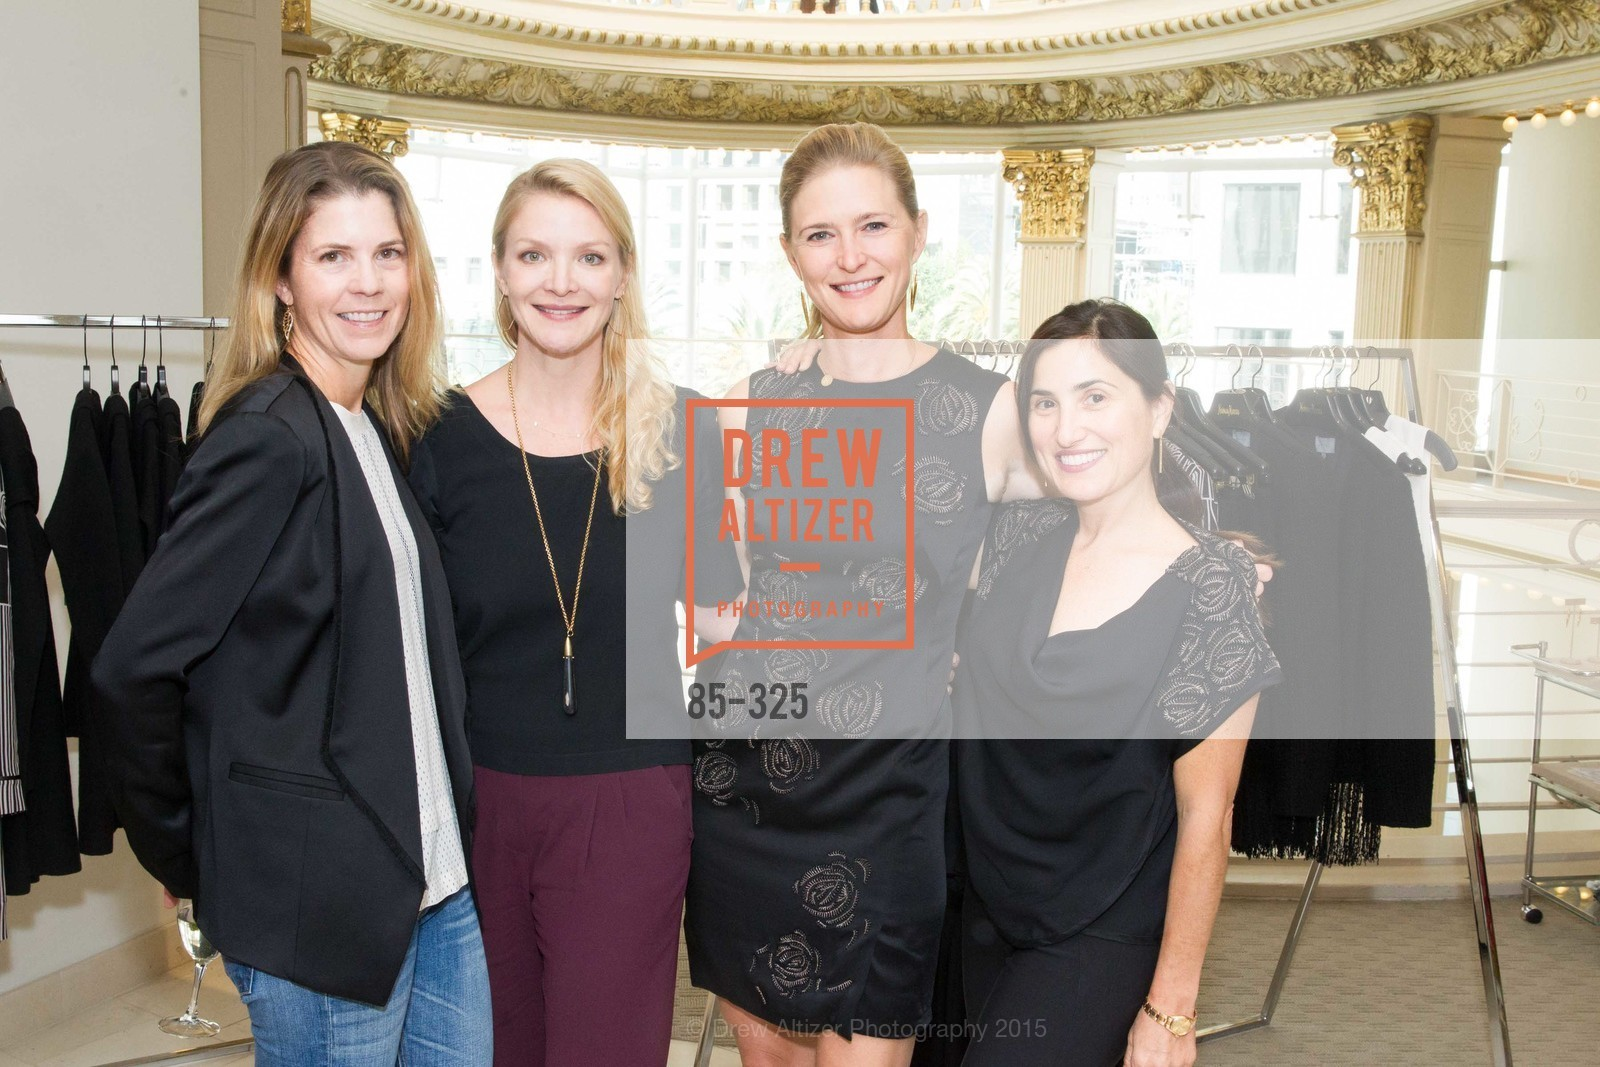 Natasha Bradley, Kristy Caylor, Alicia Engstrom, Zem Joaquin, Maiyet Reception at Neiman Marcus, Neiman Marcus, September 29th, 2015,Drew Altizer, Drew Altizer Photography, full-service event agency, private events, San Francisco photographer, photographer California